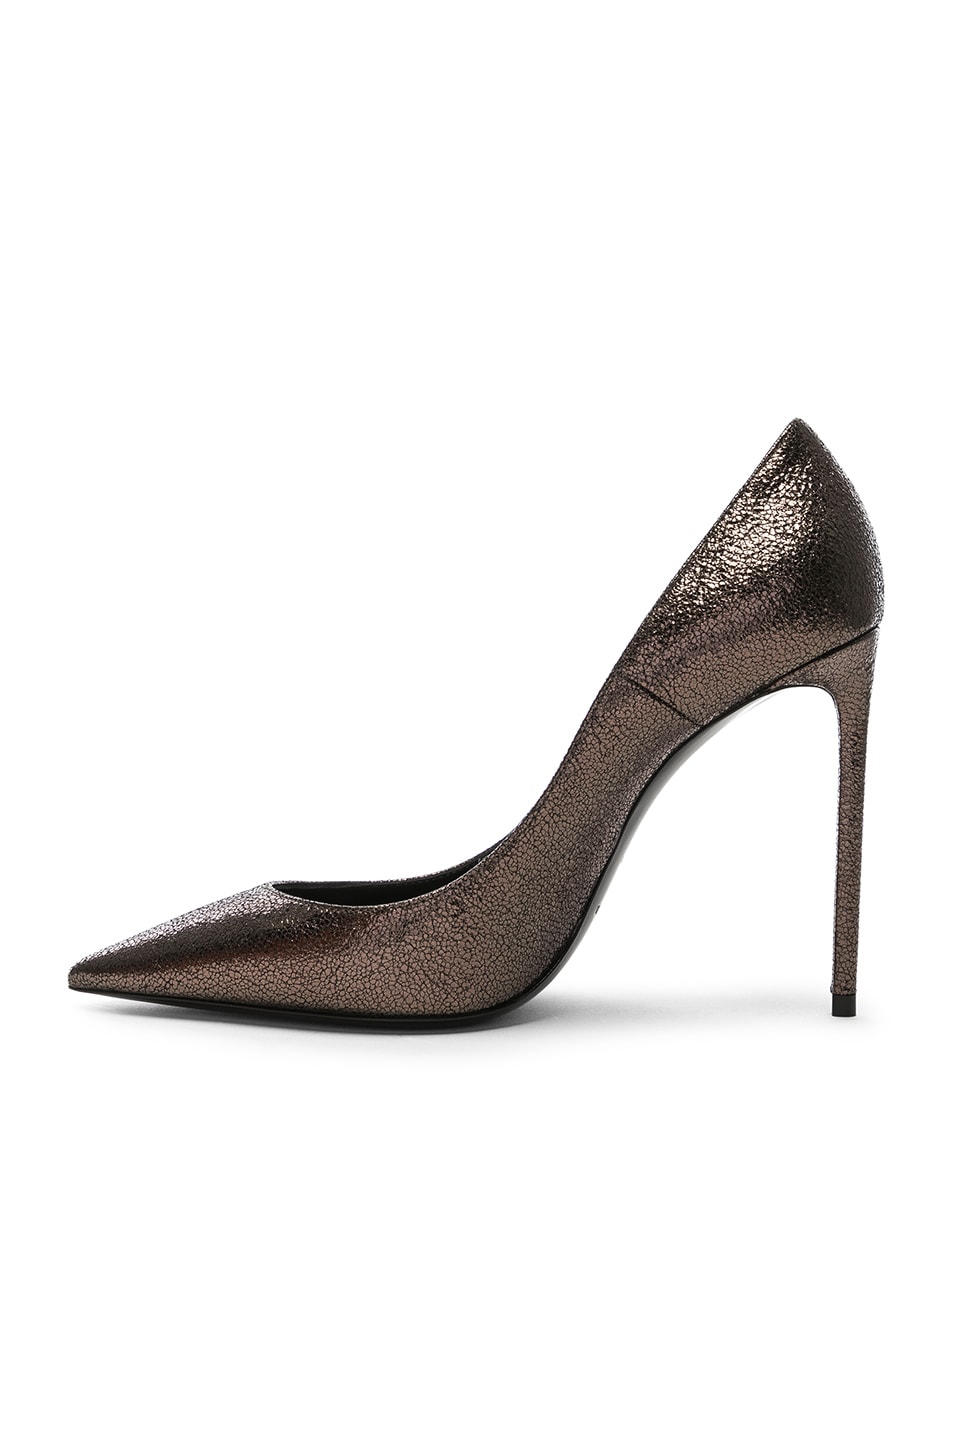 Image 5 of Saint Laurent Zoe Pumps in Gunmetal